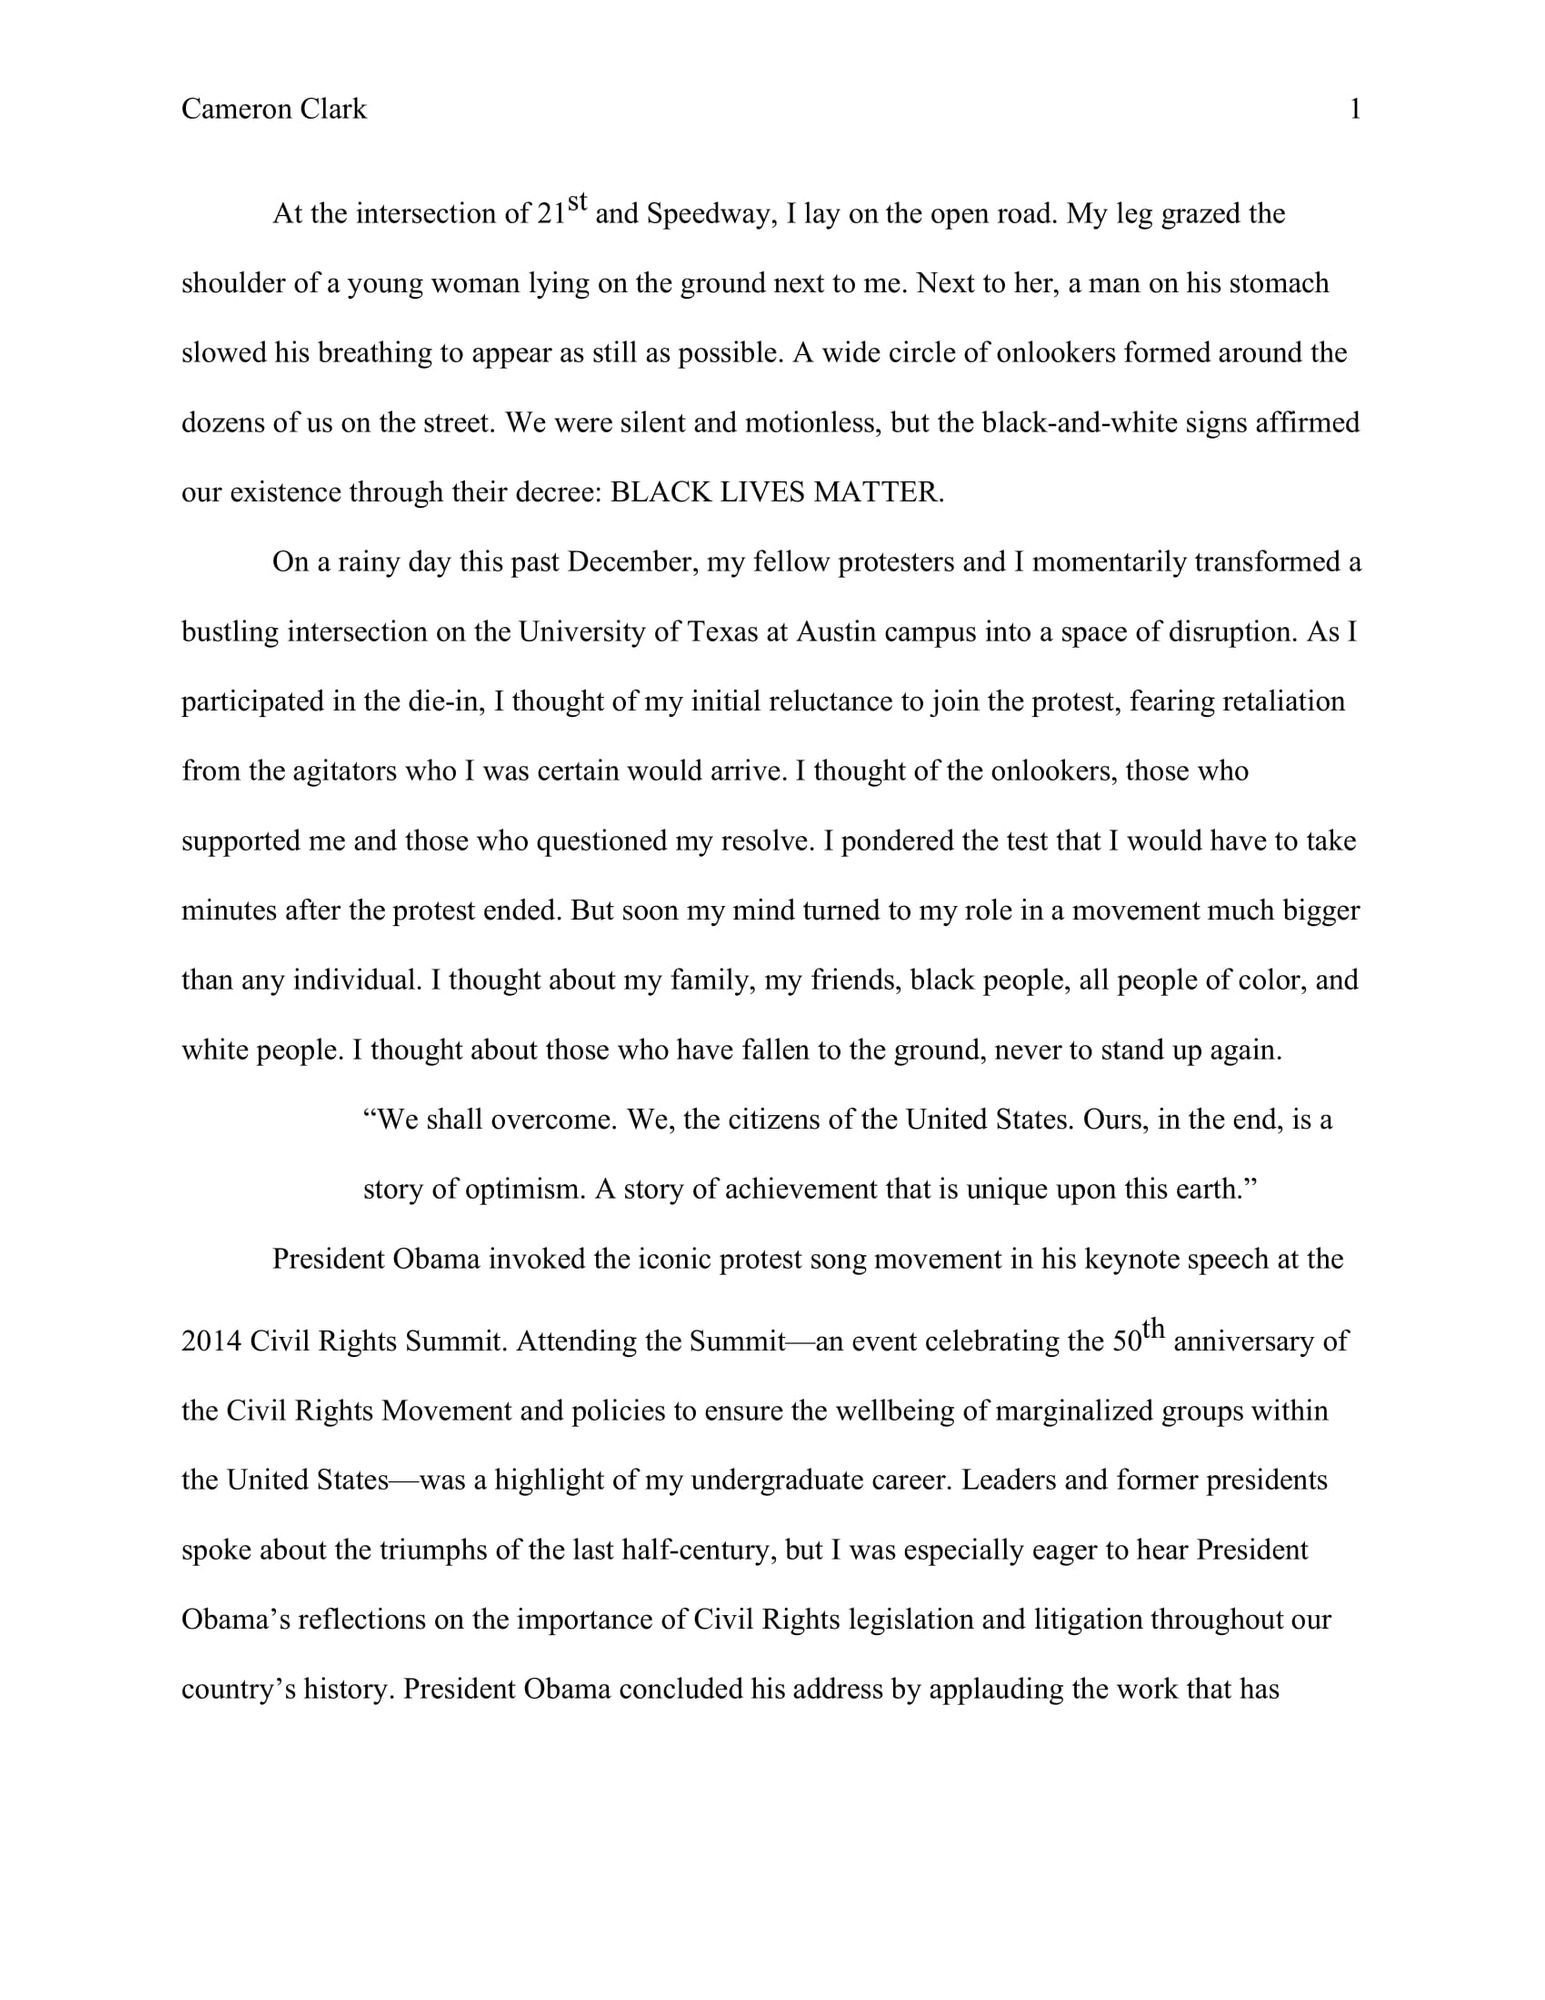 Law School Admissions Essay